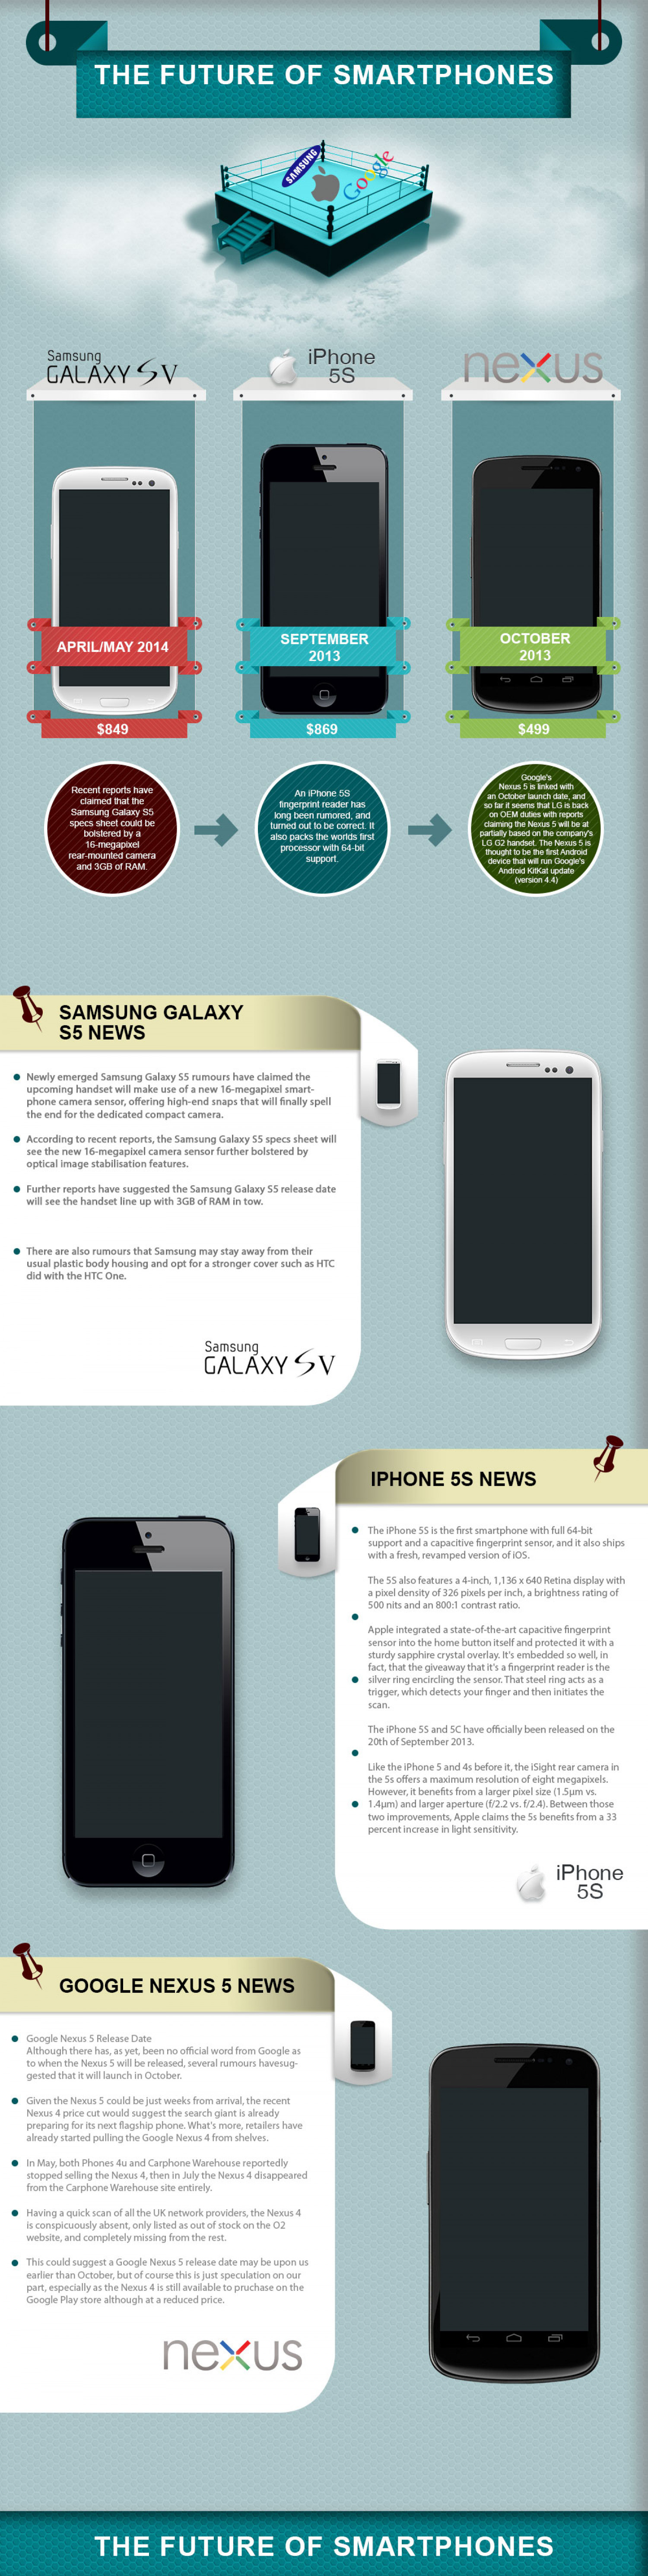 The Future of Smartphones Infographic